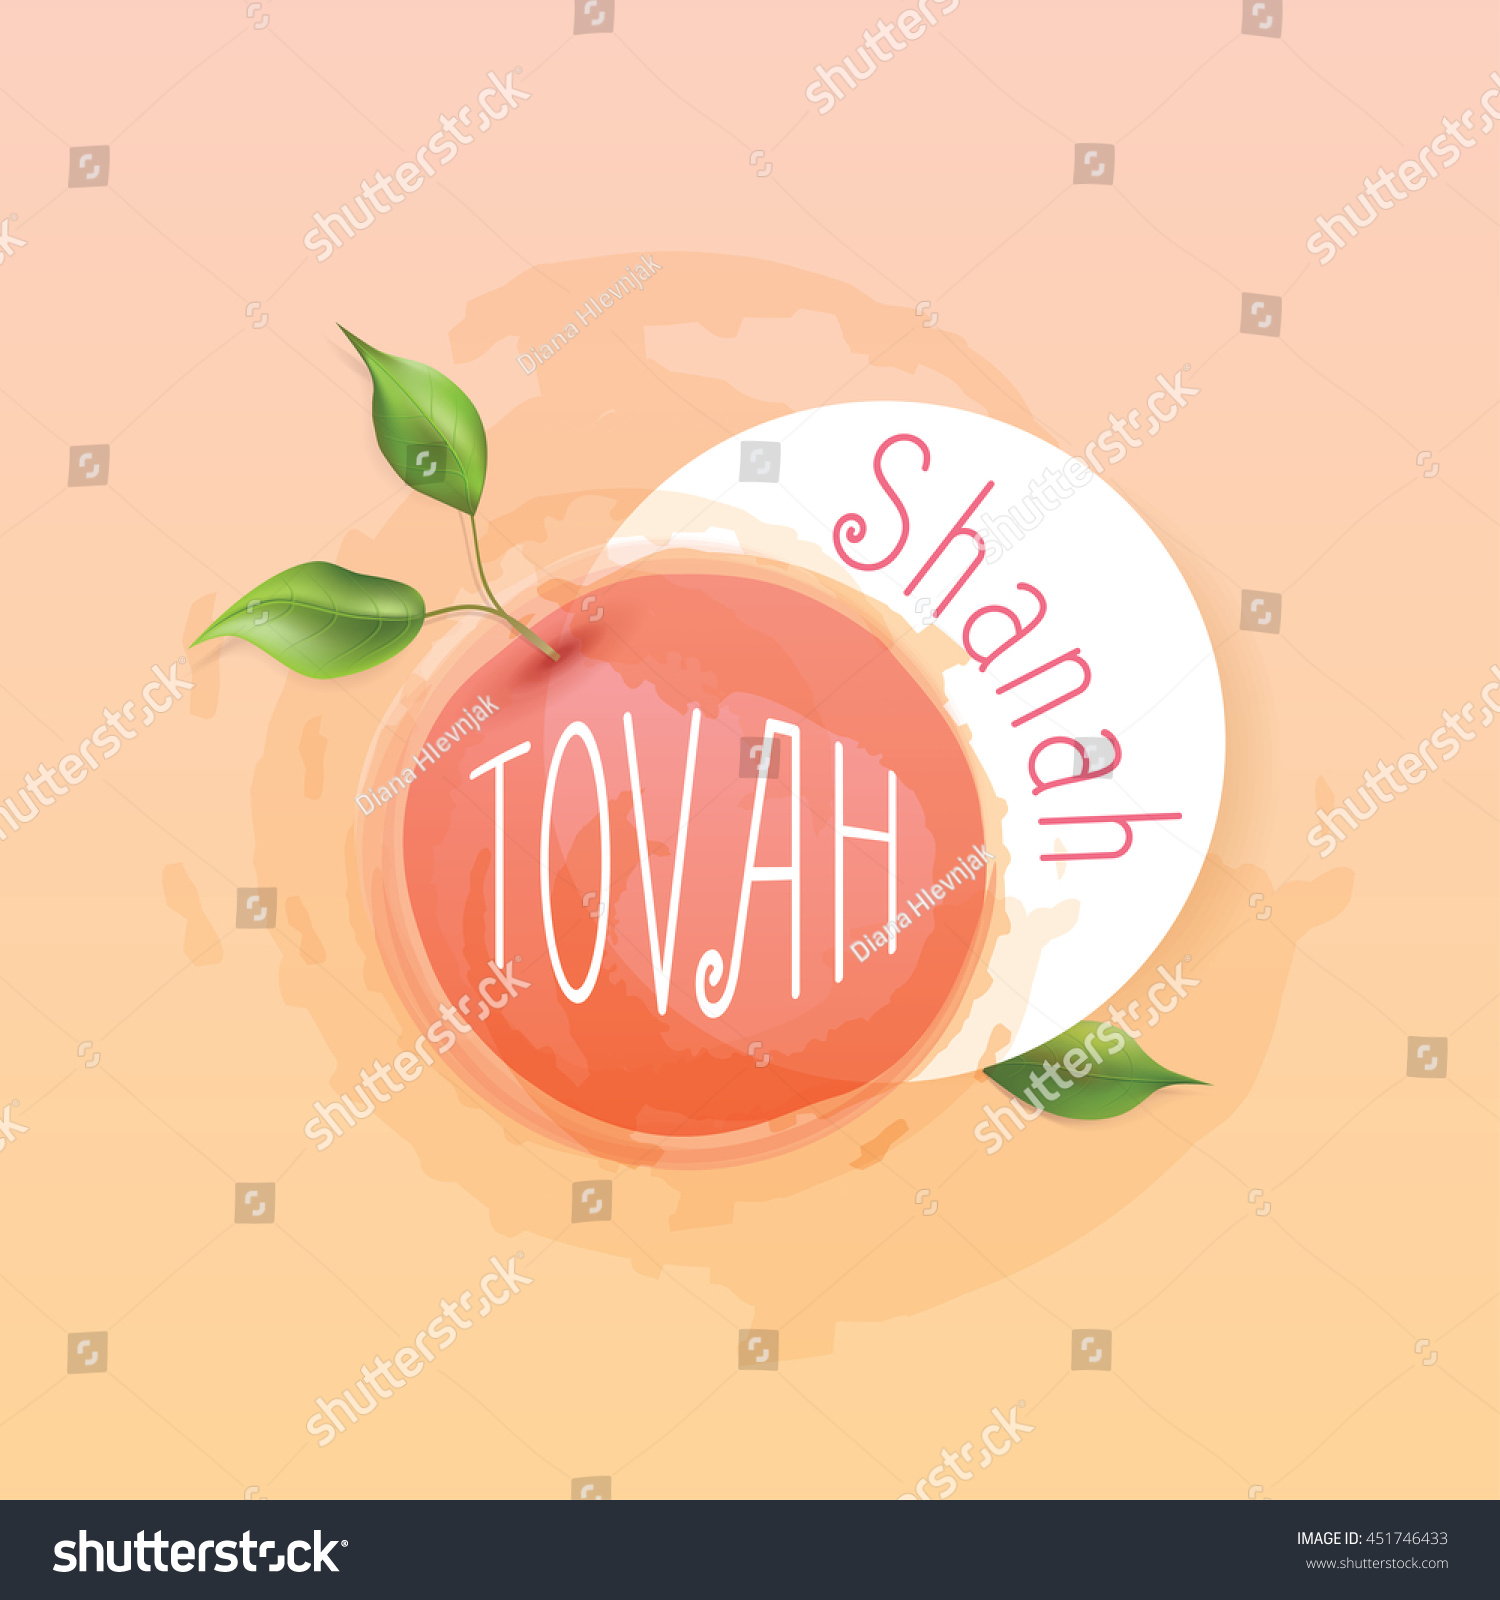 Rosh hashanah jewish new year card stock vector 451746433 rosh hashanah jewish new year card template design with shanah tovah greetings and apple surrounded by kristyandbryce Choice Image